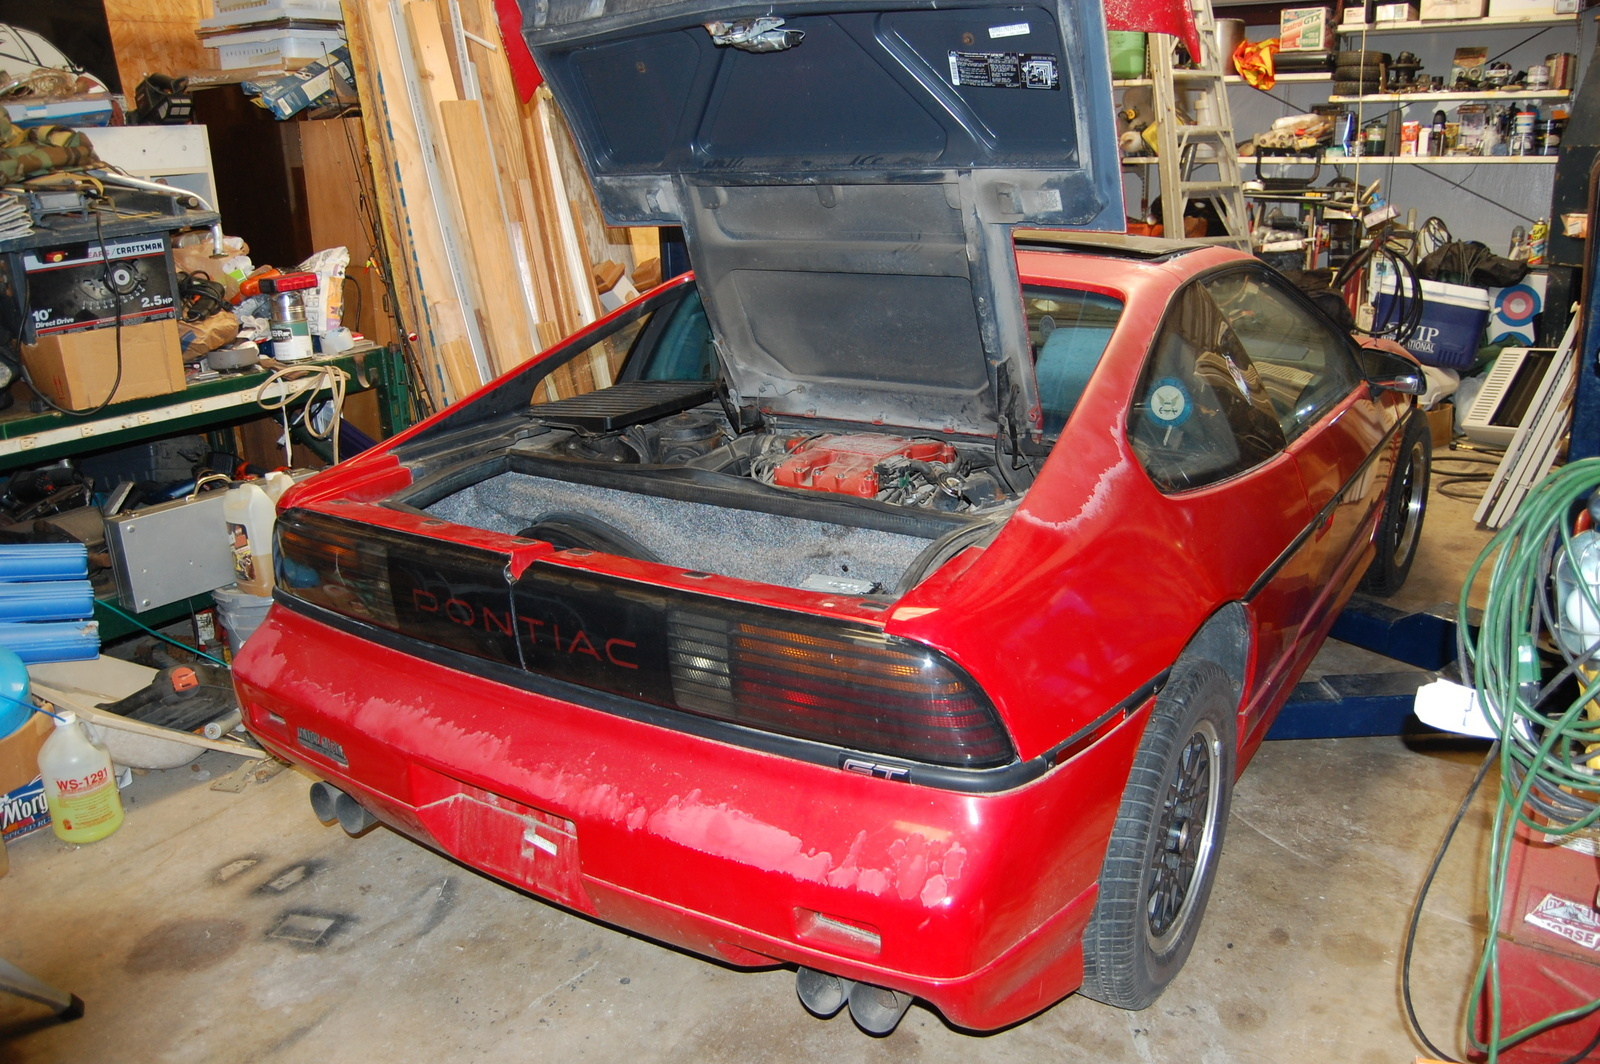 Pontiac Fiero Questions Engine Drop Cargurus 1986 Wiring Schematic Also Its On A Lift And Can I Swing The To Do Clutch Change Or Is It Best Totally Remove Any Other Info Will Be Very Appreciated